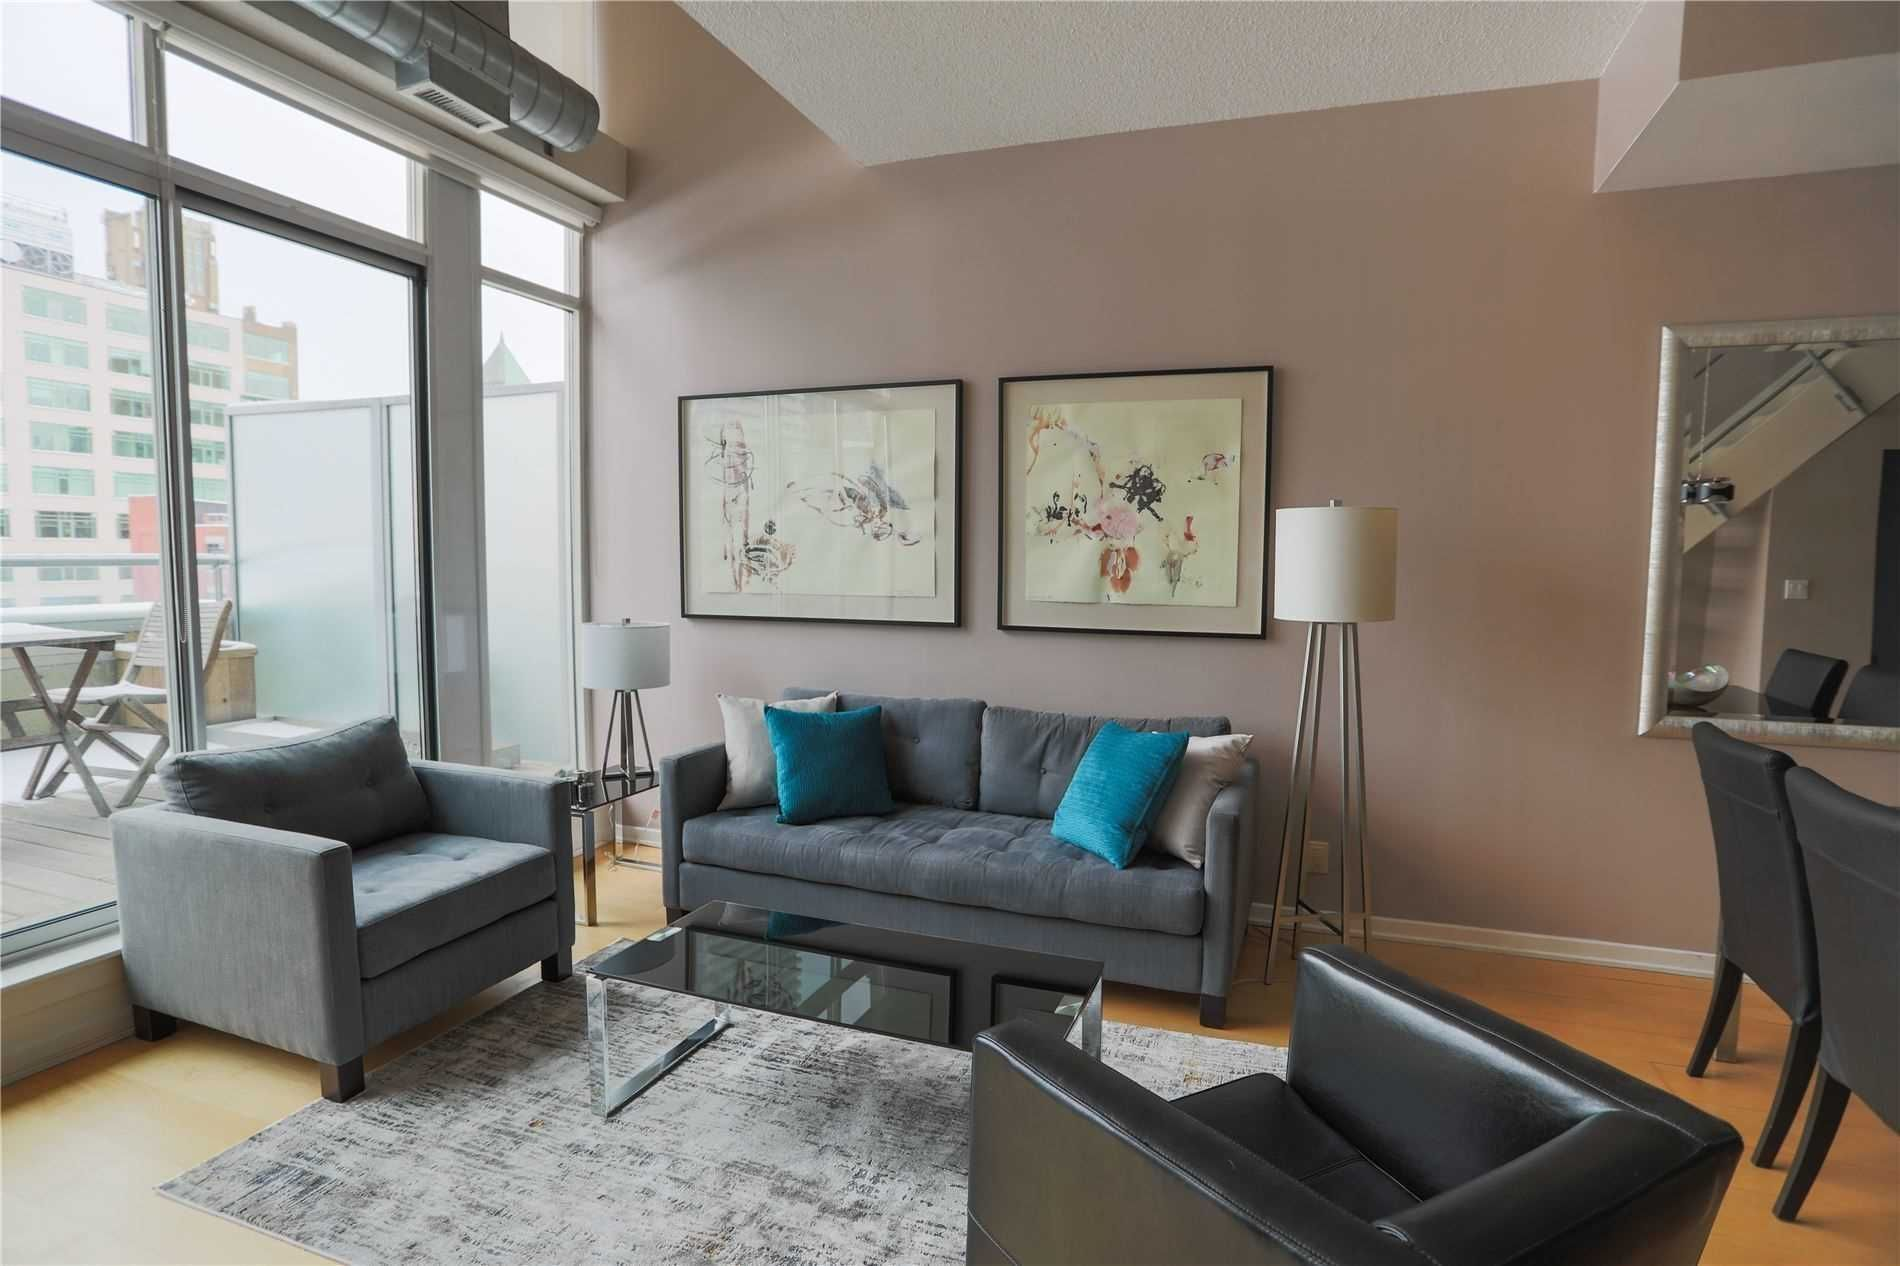 388 Richmond St, unit 704 for rent in Toronto - image #2